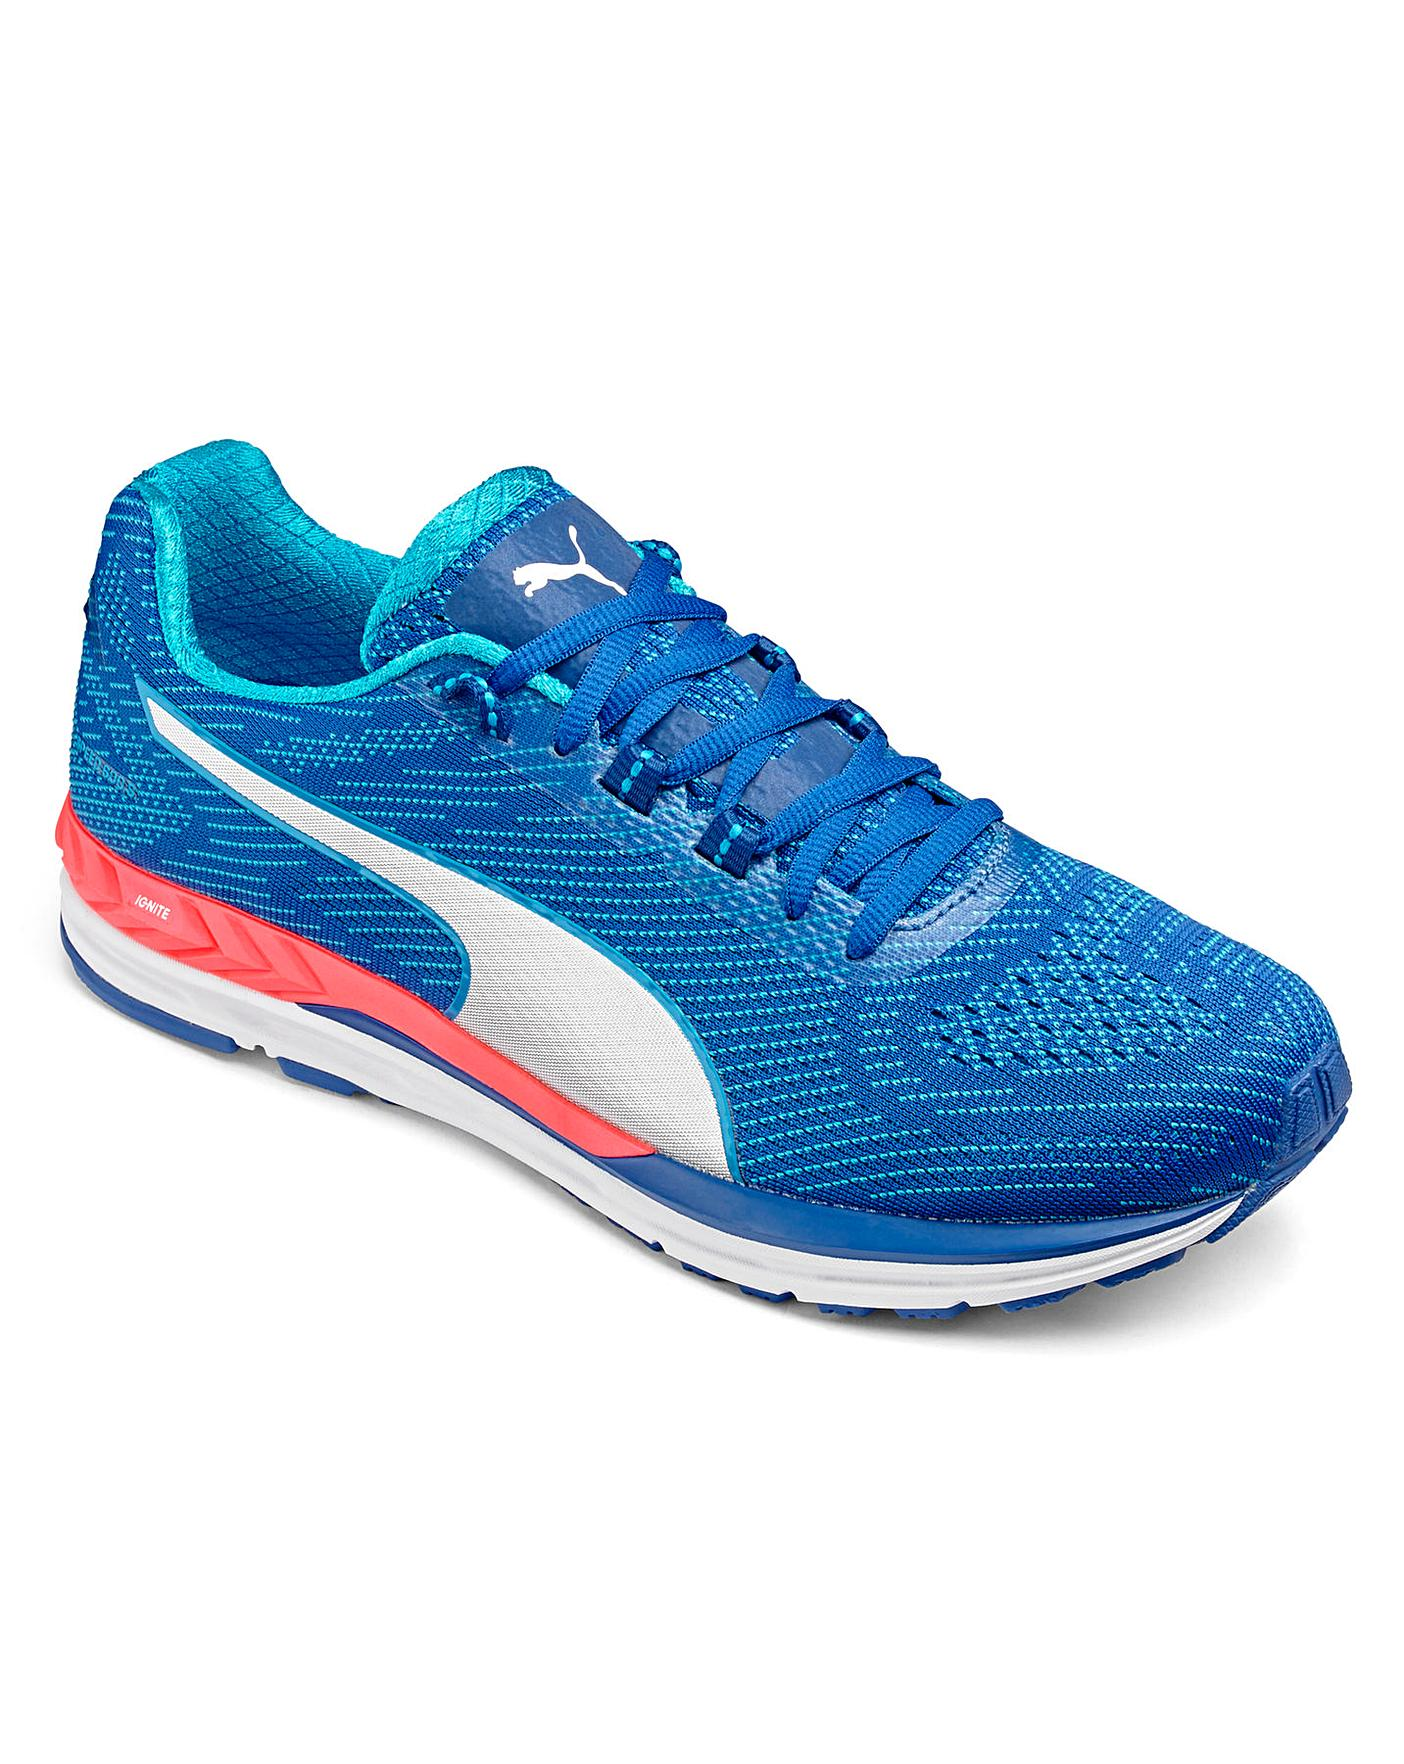 Accesorios gritar cosecha  Puma Speed 600 S Ignite Trainers | Crazy Clearance